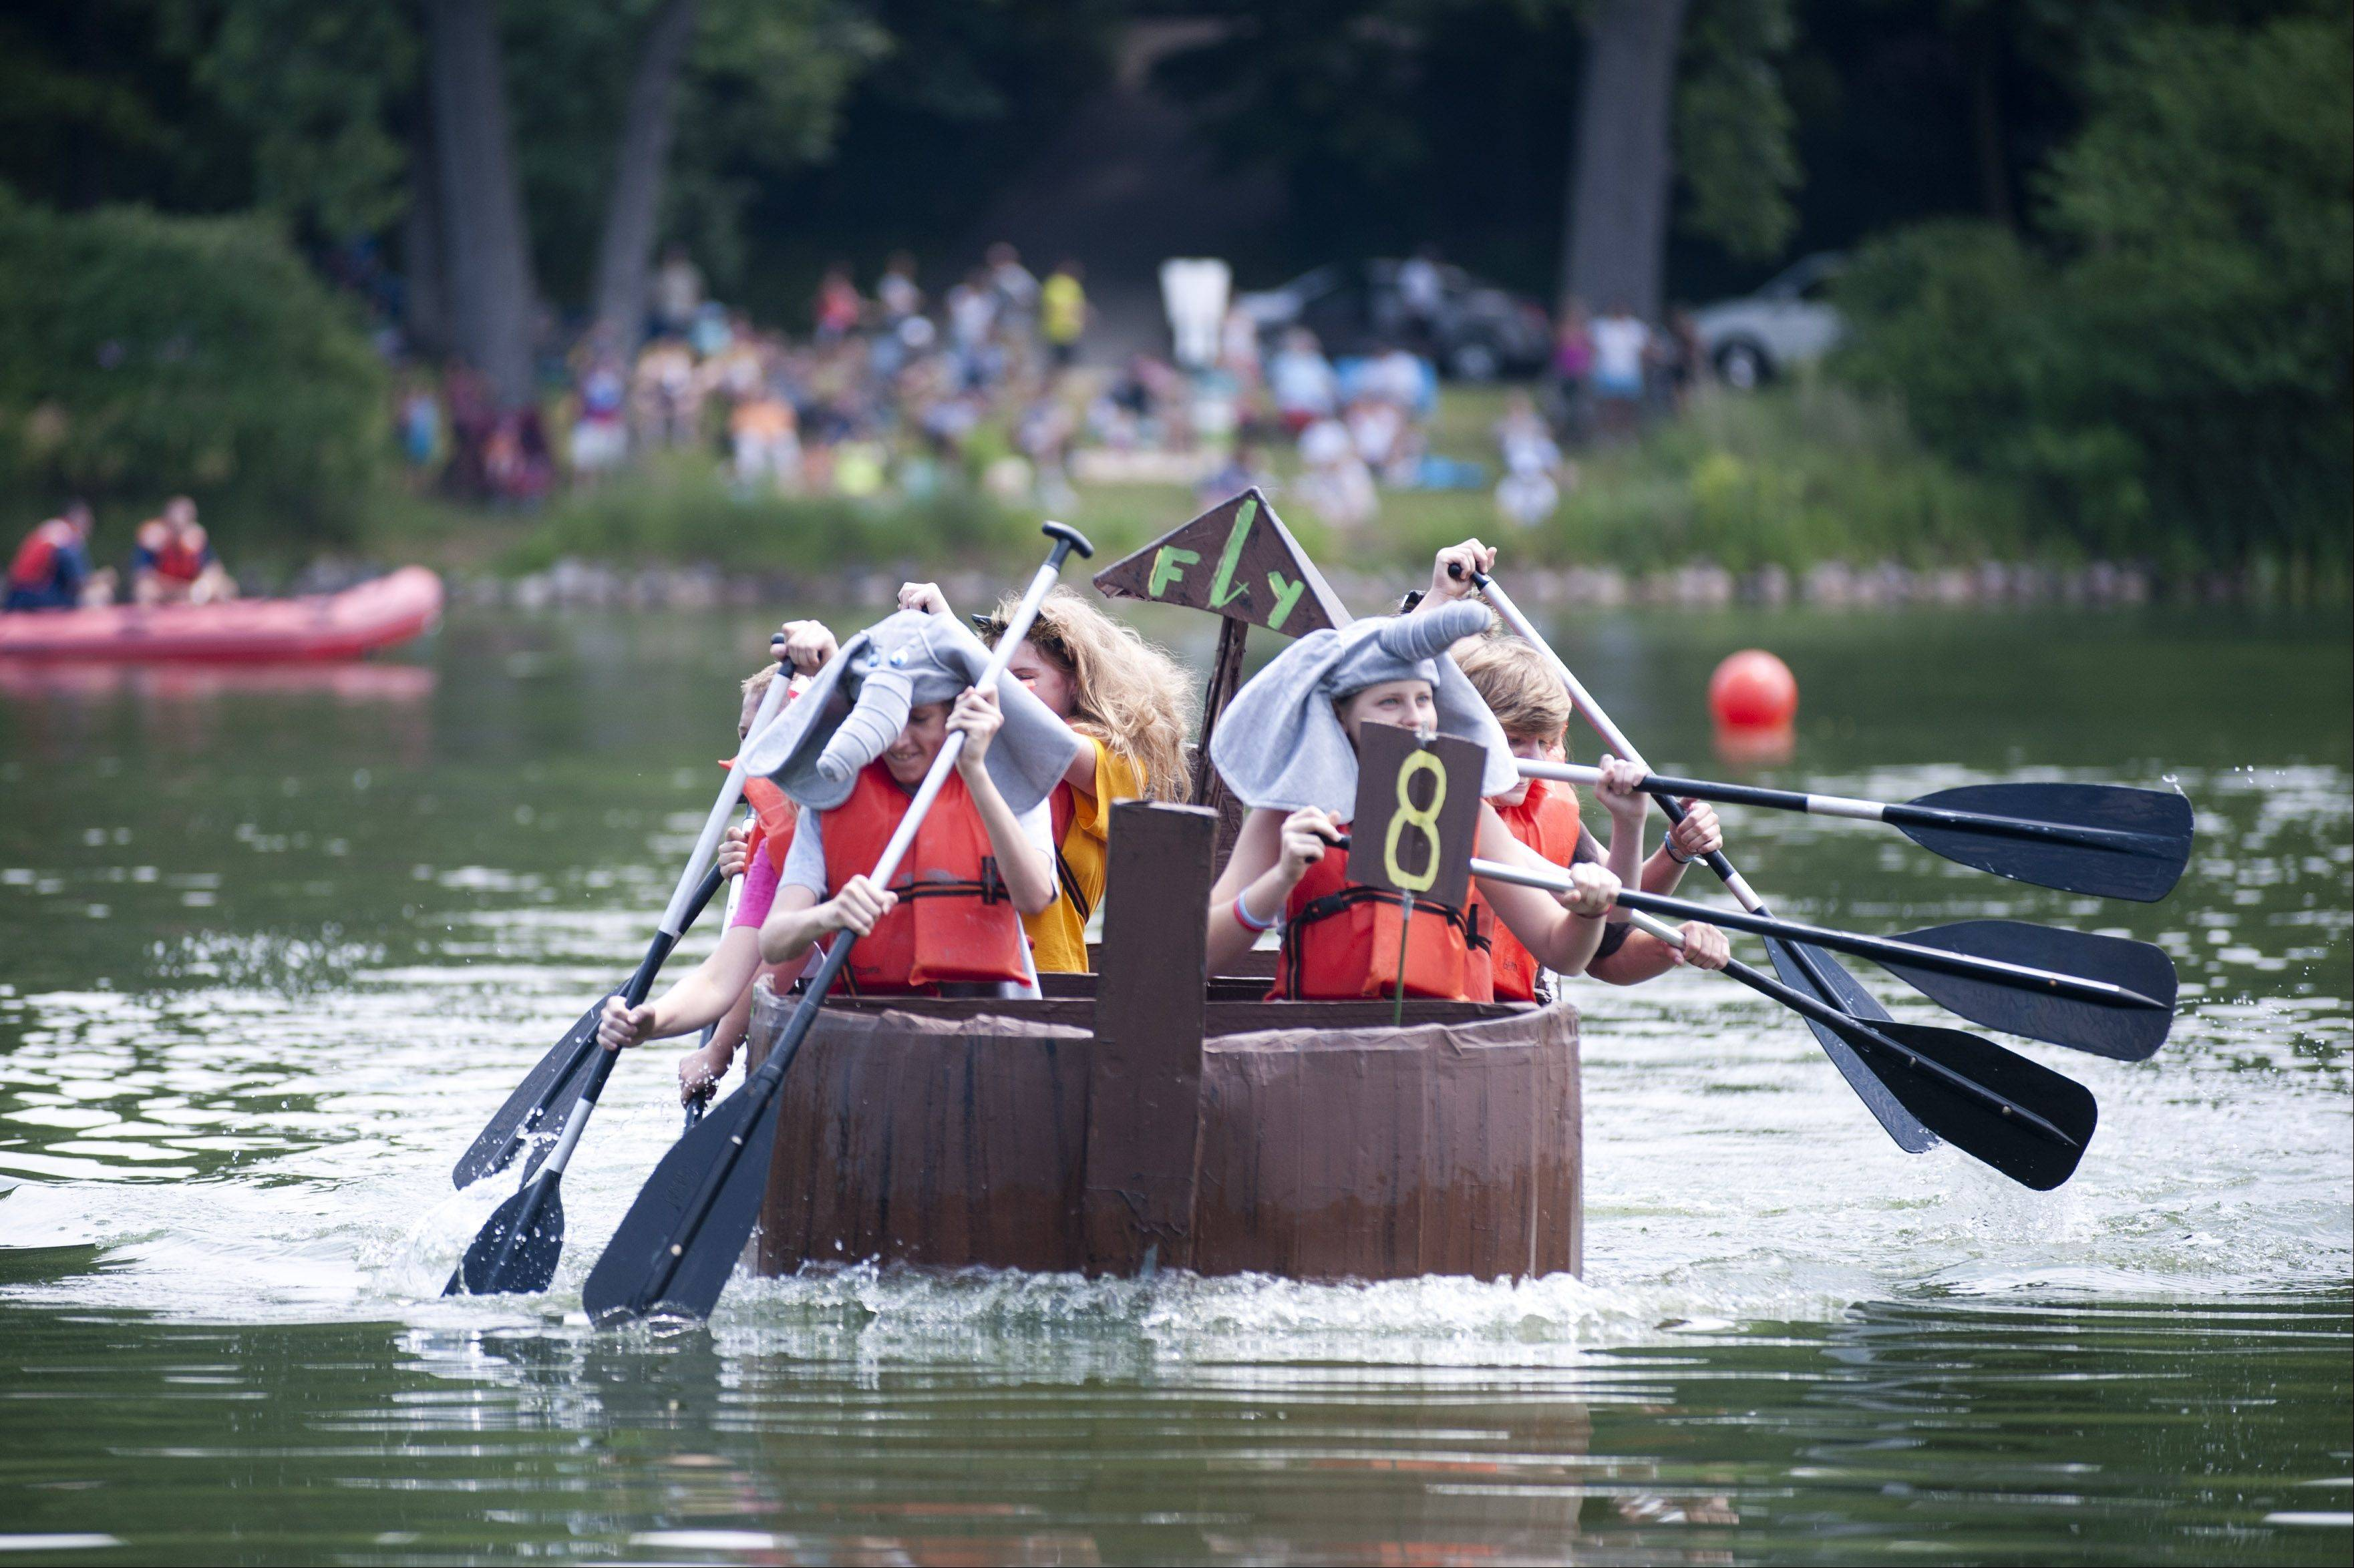 The annual Glen Ellyn Cardboard Regatta on Saturday at Lake Ellyn